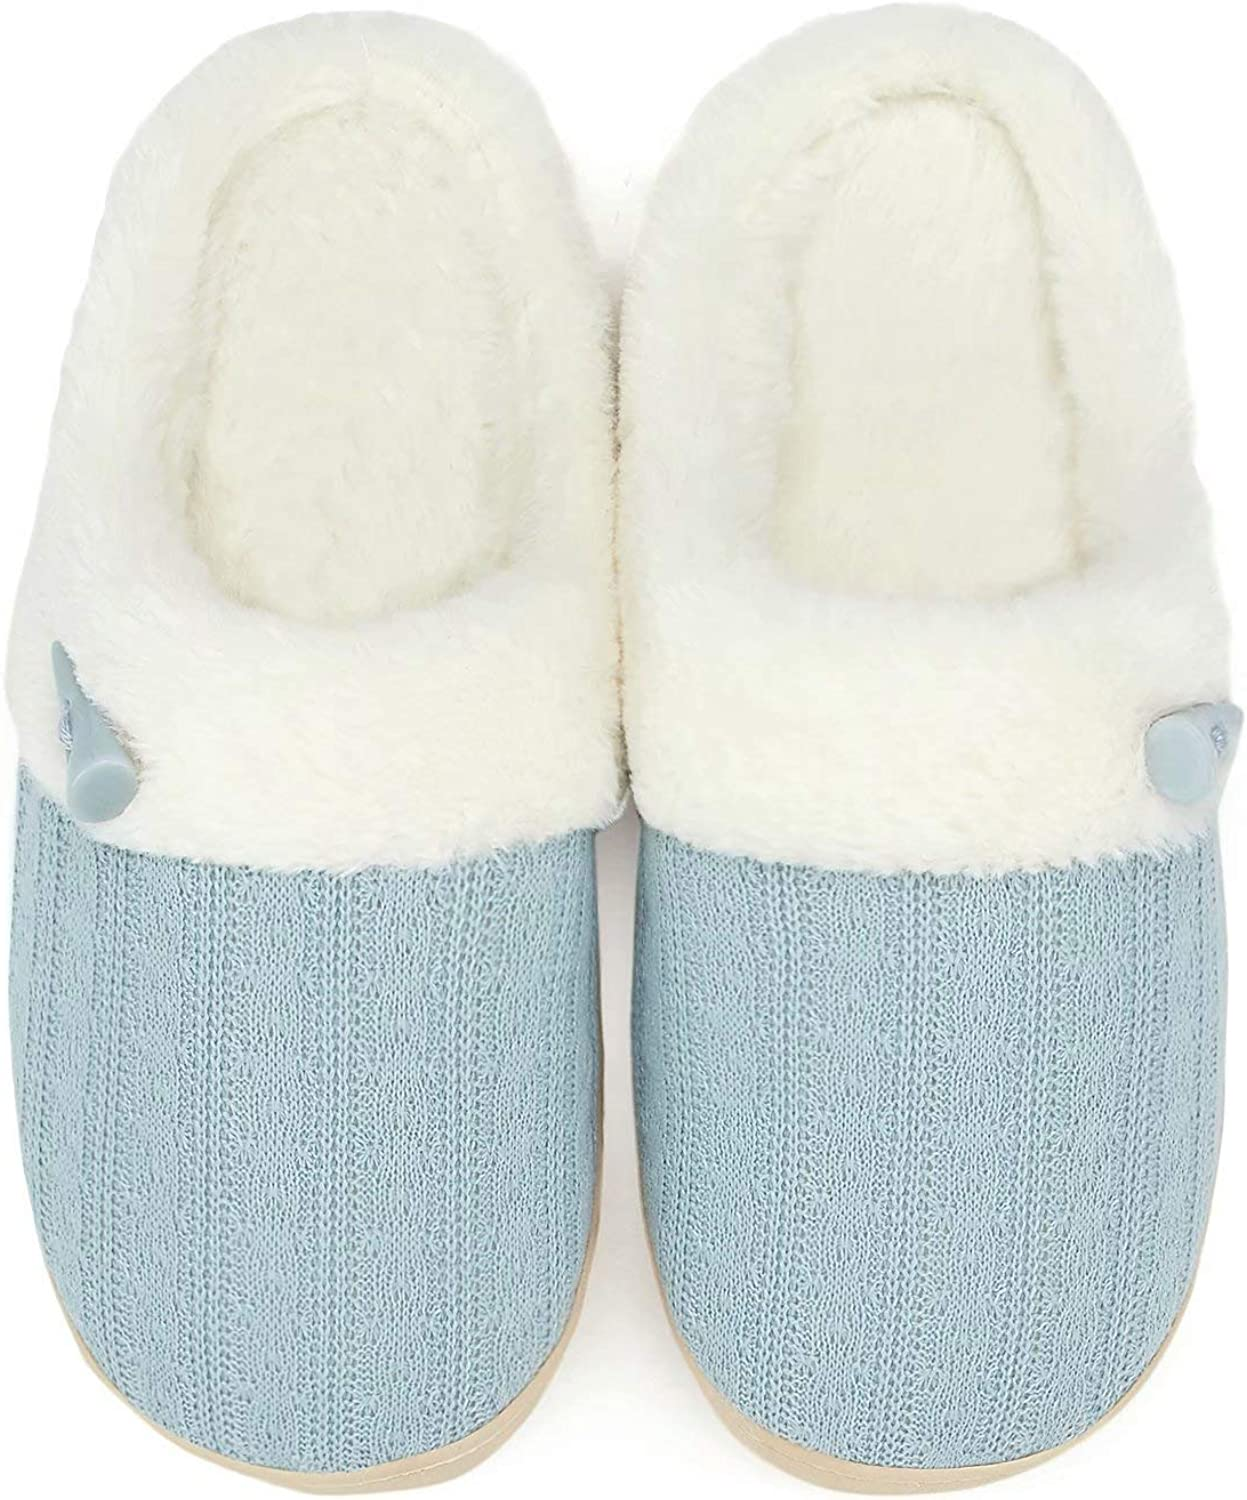 NineCiFun Women's Slip on Fuzzy Slippers Memory Foam House Slippers Outdoor Indoor Warm Plush Bedroom Shoes Scuff with Fur Lining